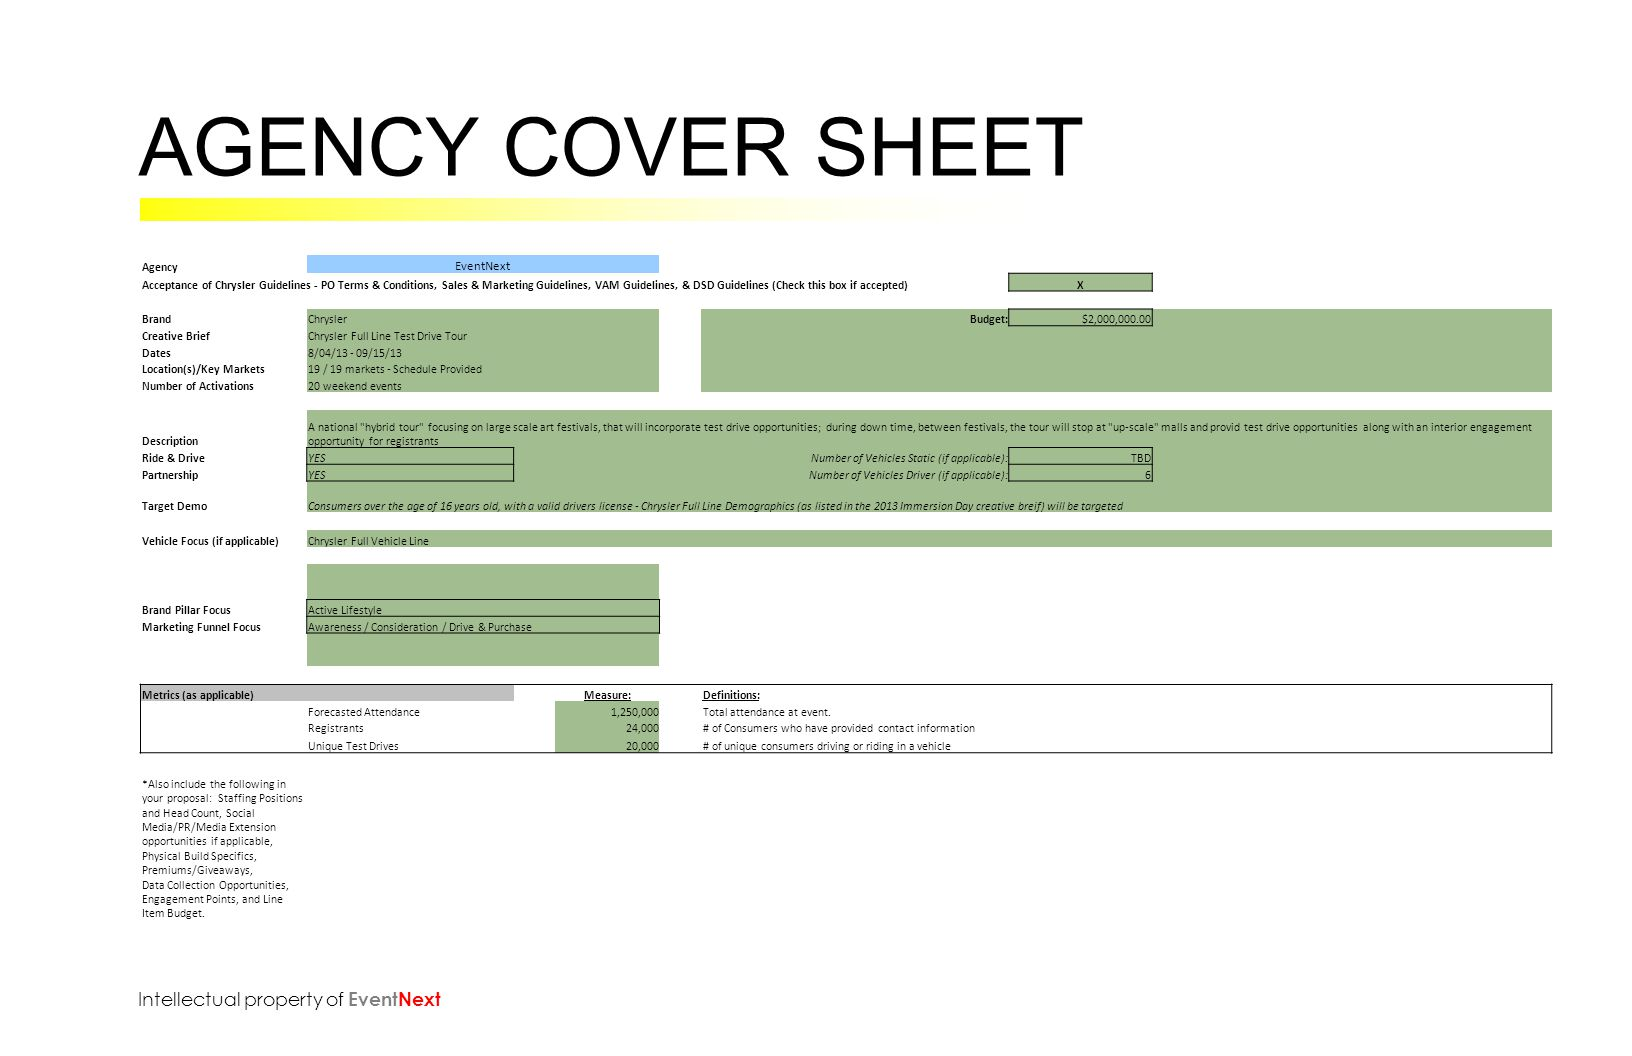 AGENCY COVER SHEET Intellectual property of EventNext Agency EventNext Acceptance of Chrysler Guidelines - PO Terms & Conditions, Sales & Marketing Guidelines, VAM Guidelines, & DSD Guidelines (Check this box if accepted)X BrandChryslerBudget: $2,000,000.00 Creative BriefChrysler Full Line Test Drive Tour Dates8/04/13 - 09/15/13 Location(s)/Key Markets19 / 19 markets - Schedule Provided Number of Activations20 weekend events Description A national hybrid tour focusing on large scale art festivals, that will incorporate test drive opportunities; during down time, between festivals, the tour will stop at up-scale malls and provid test drive opportunities along with an interior engagement opportunity for registrants Ride & DriveYES Number of Vehicles Static (if applicable):TBD PartnershipYES Number of Vehicles Driver (if applicable):6 Target DemoConsumers over the age of 16 years old, with a valid drivers license - Chrysler Full Line Demographics (as listed in the 2013 Immersion Day creative breif) will be targeted Vehicle Focus (if applicable)Chrysler Full Vehicle Line Brand Pillar FocusActive Lifestyle Marketing Funnel FocusAwareness / Consideration / Drive & Purchase Metrics (as applicable) Measure: Definitions: Forecasted Attendance 1,250,000Total attendance at event.